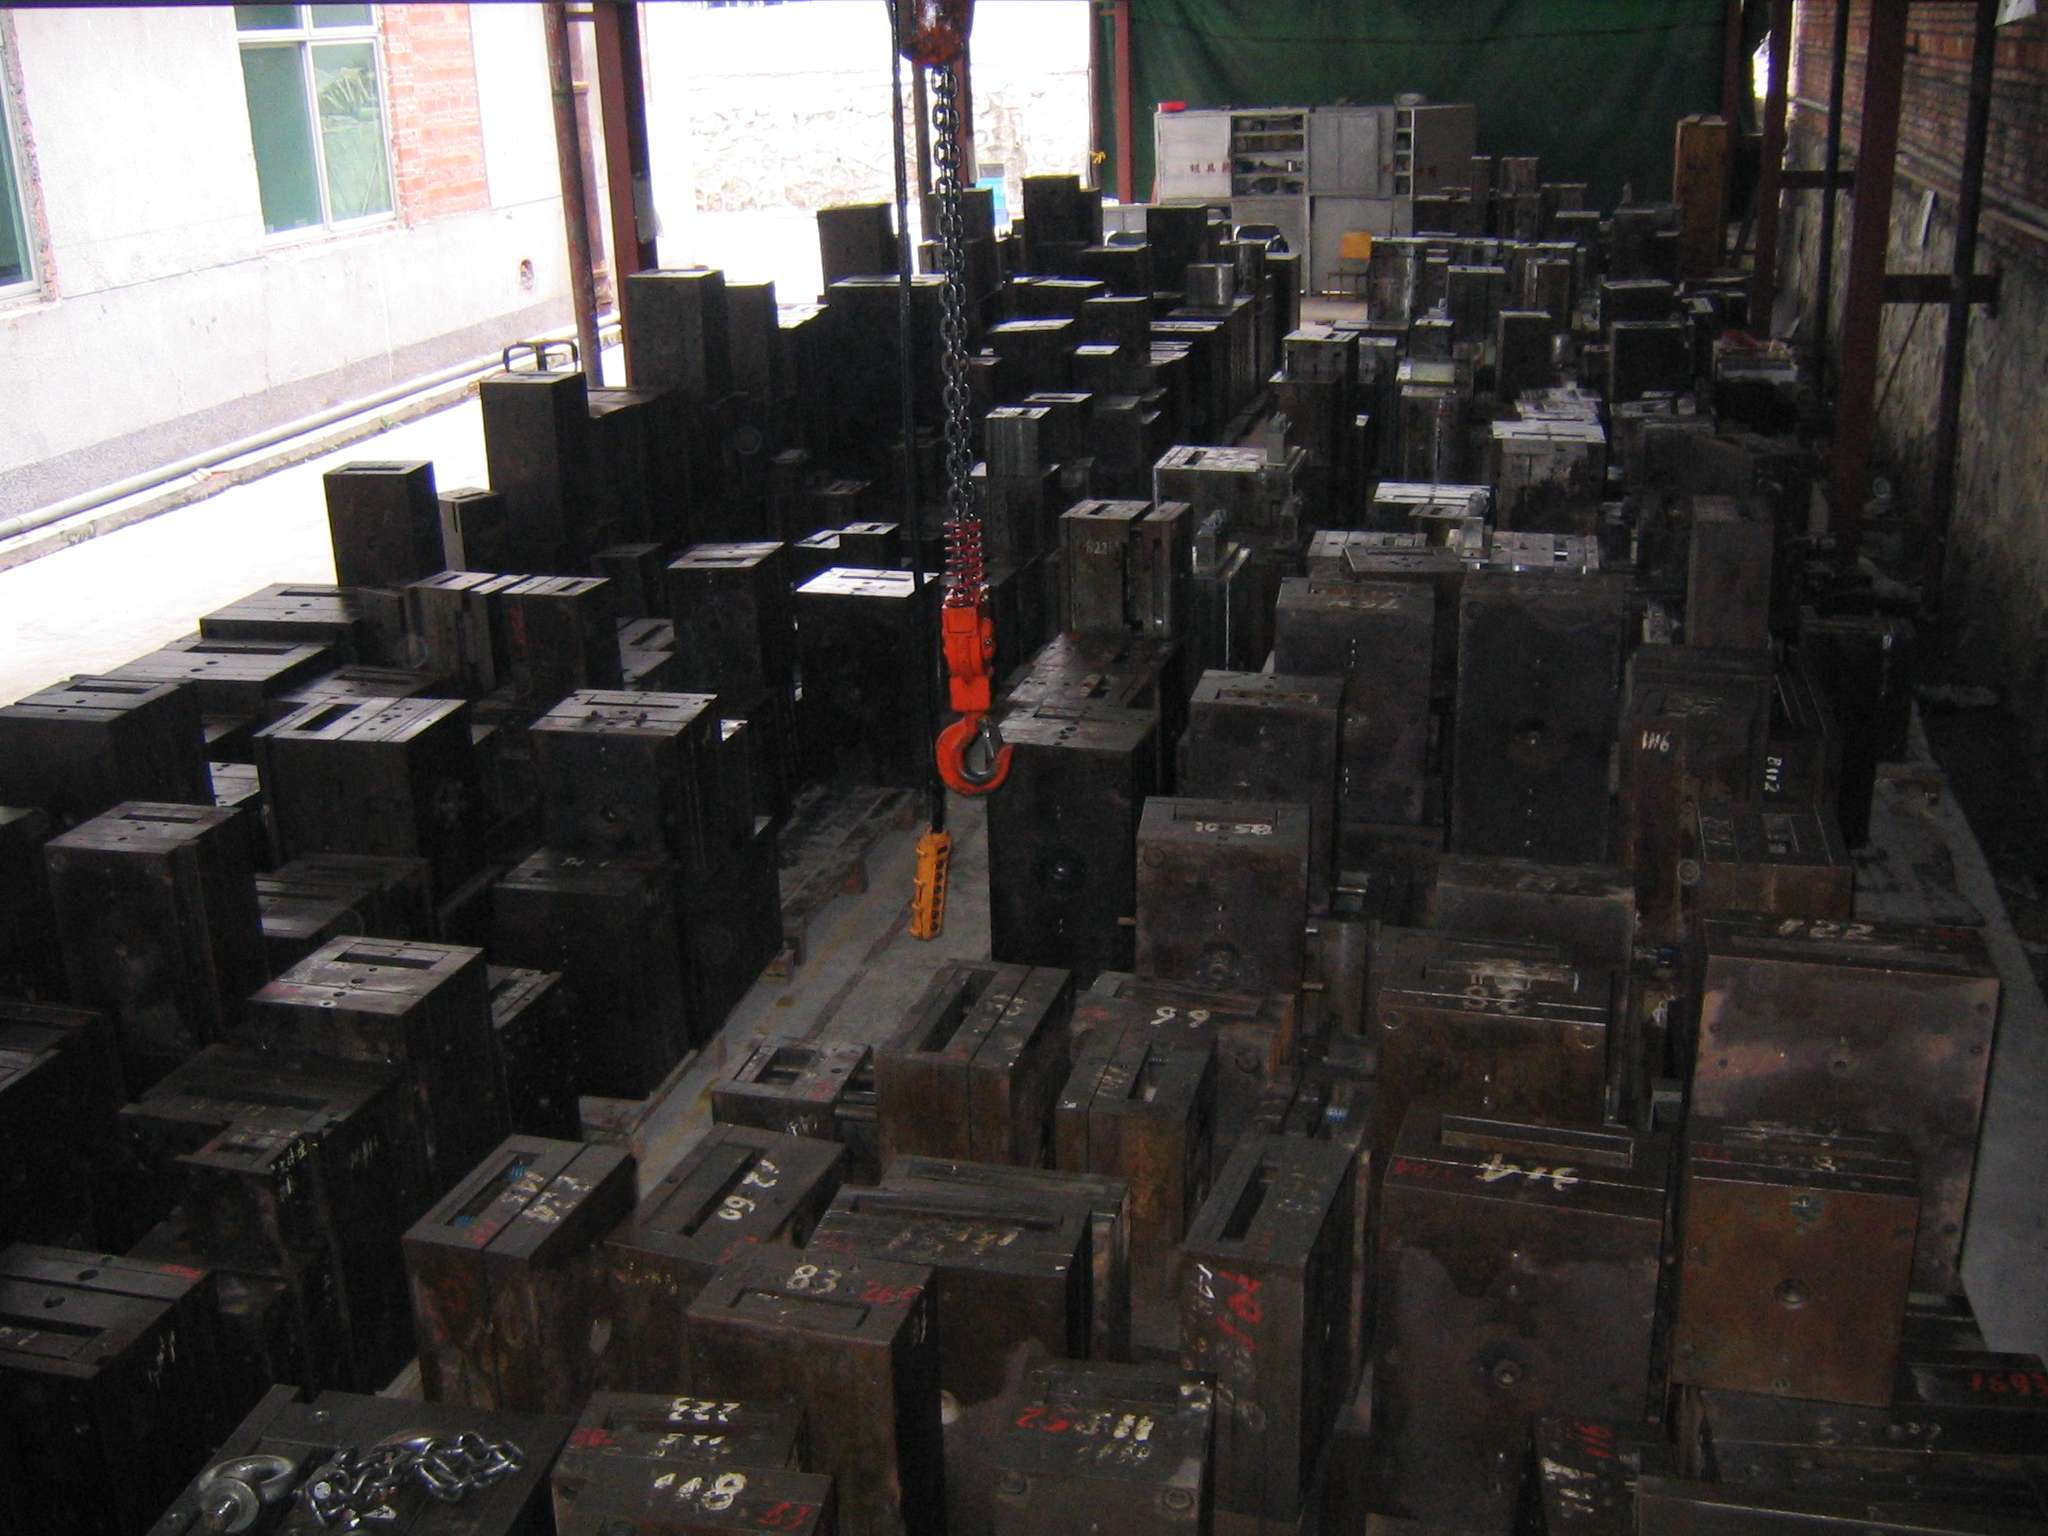 Mold Storage open air in China image 1